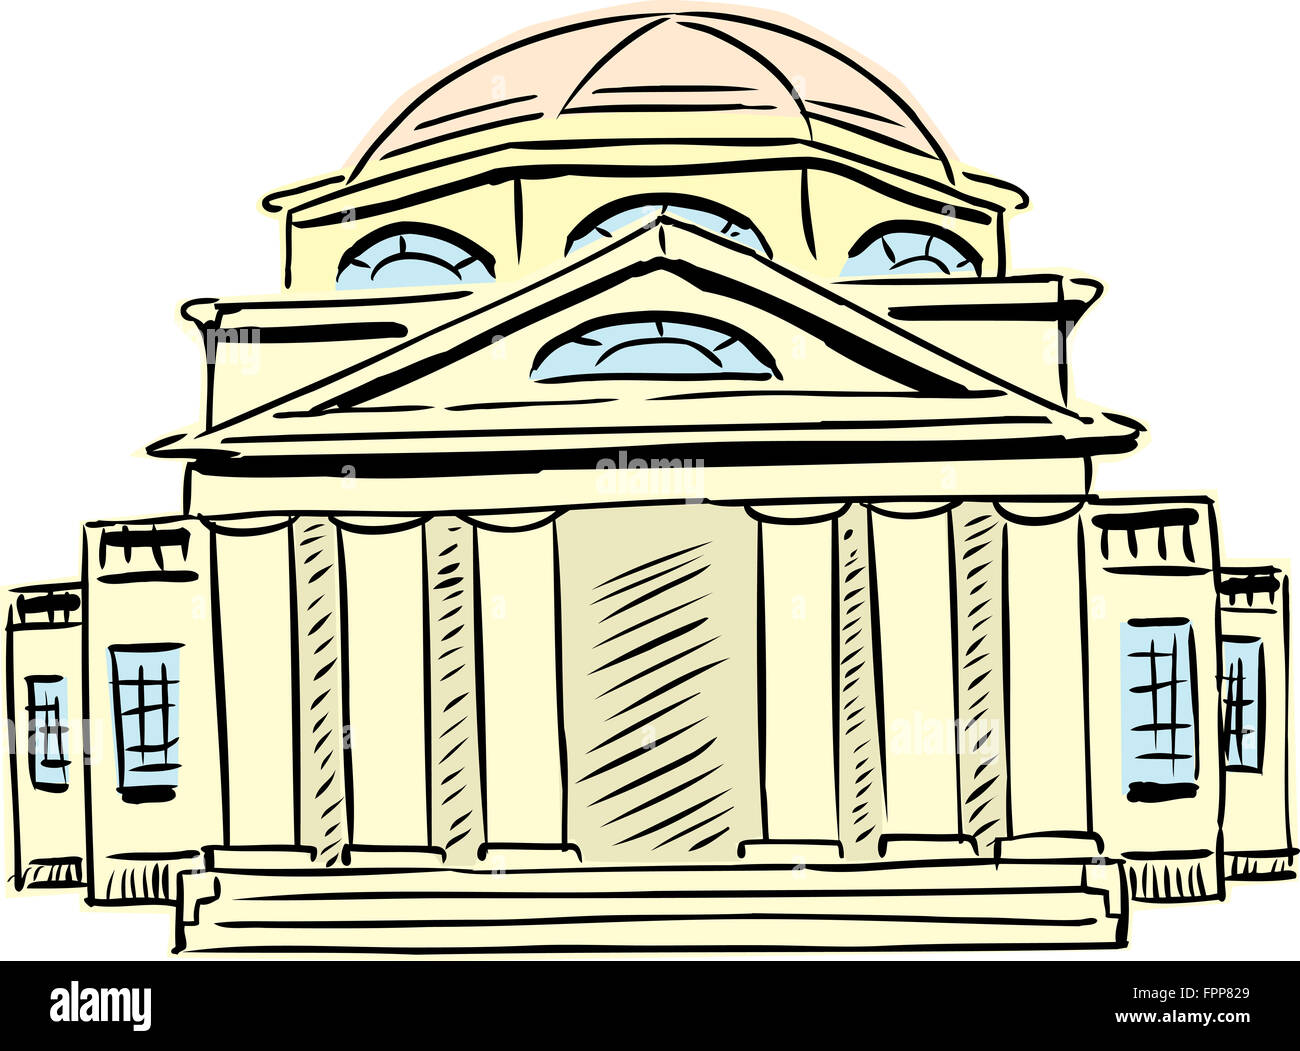 Exterior front view on single neoclassical building with obscured doorway and domed roof - Stock Image